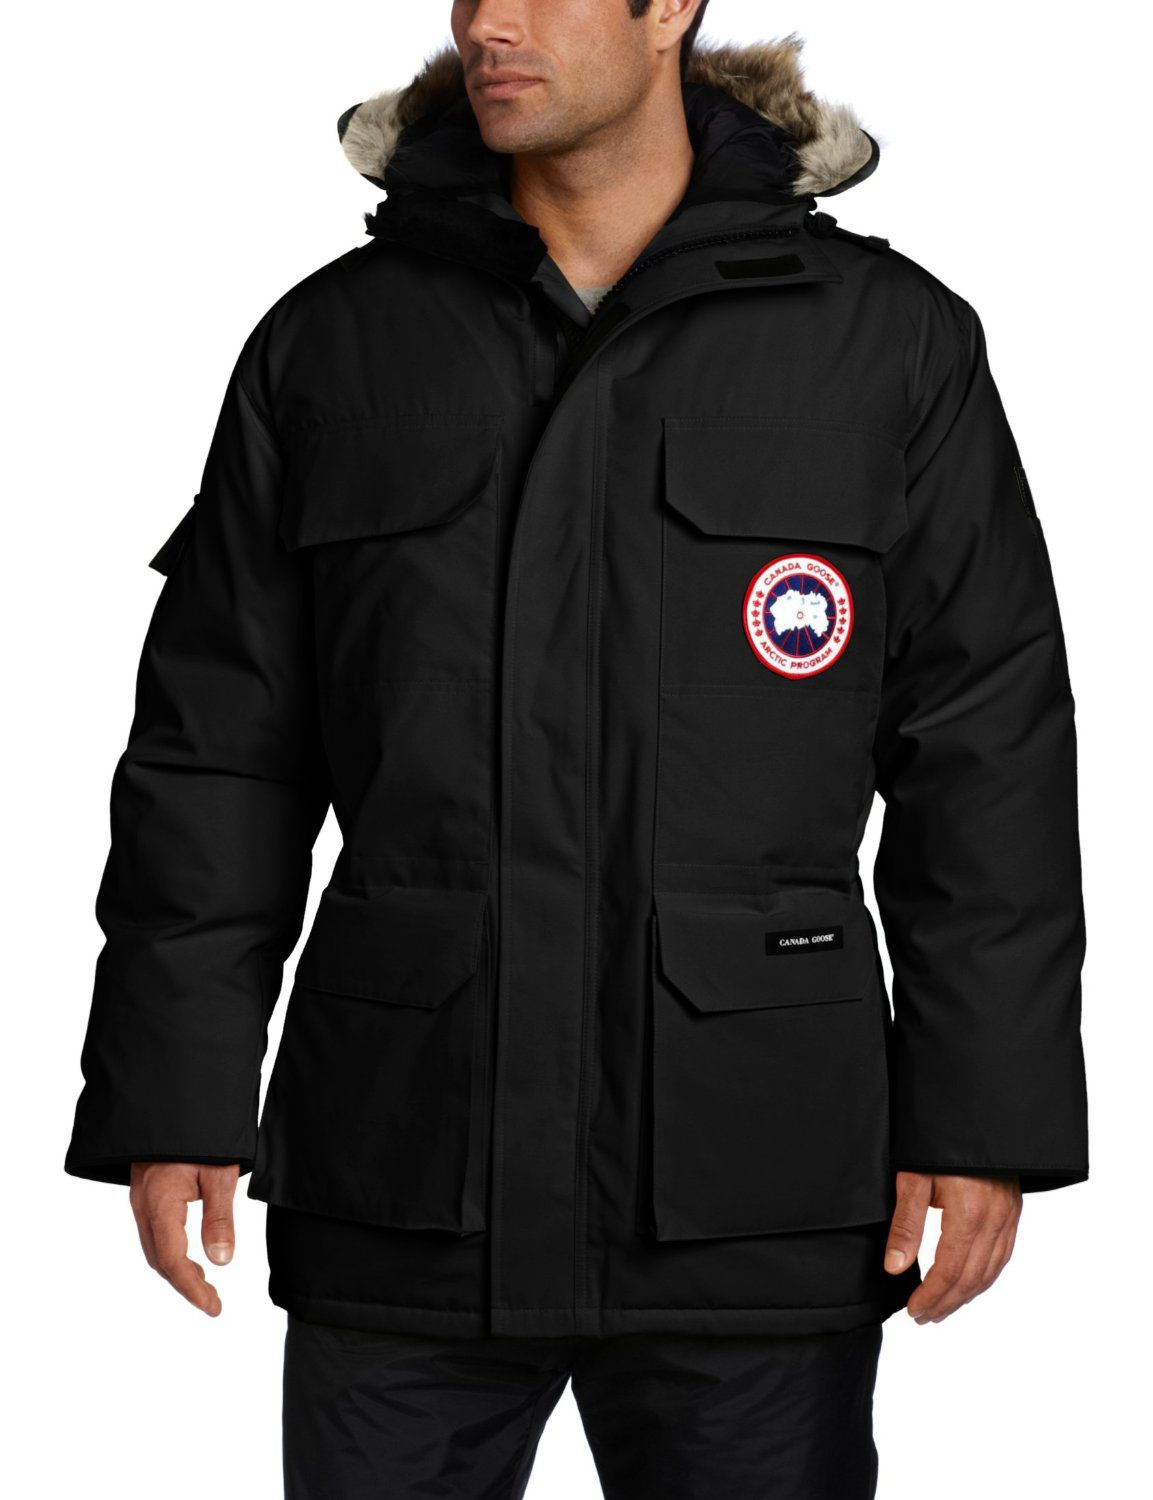 are canada goose jackets good for skiing